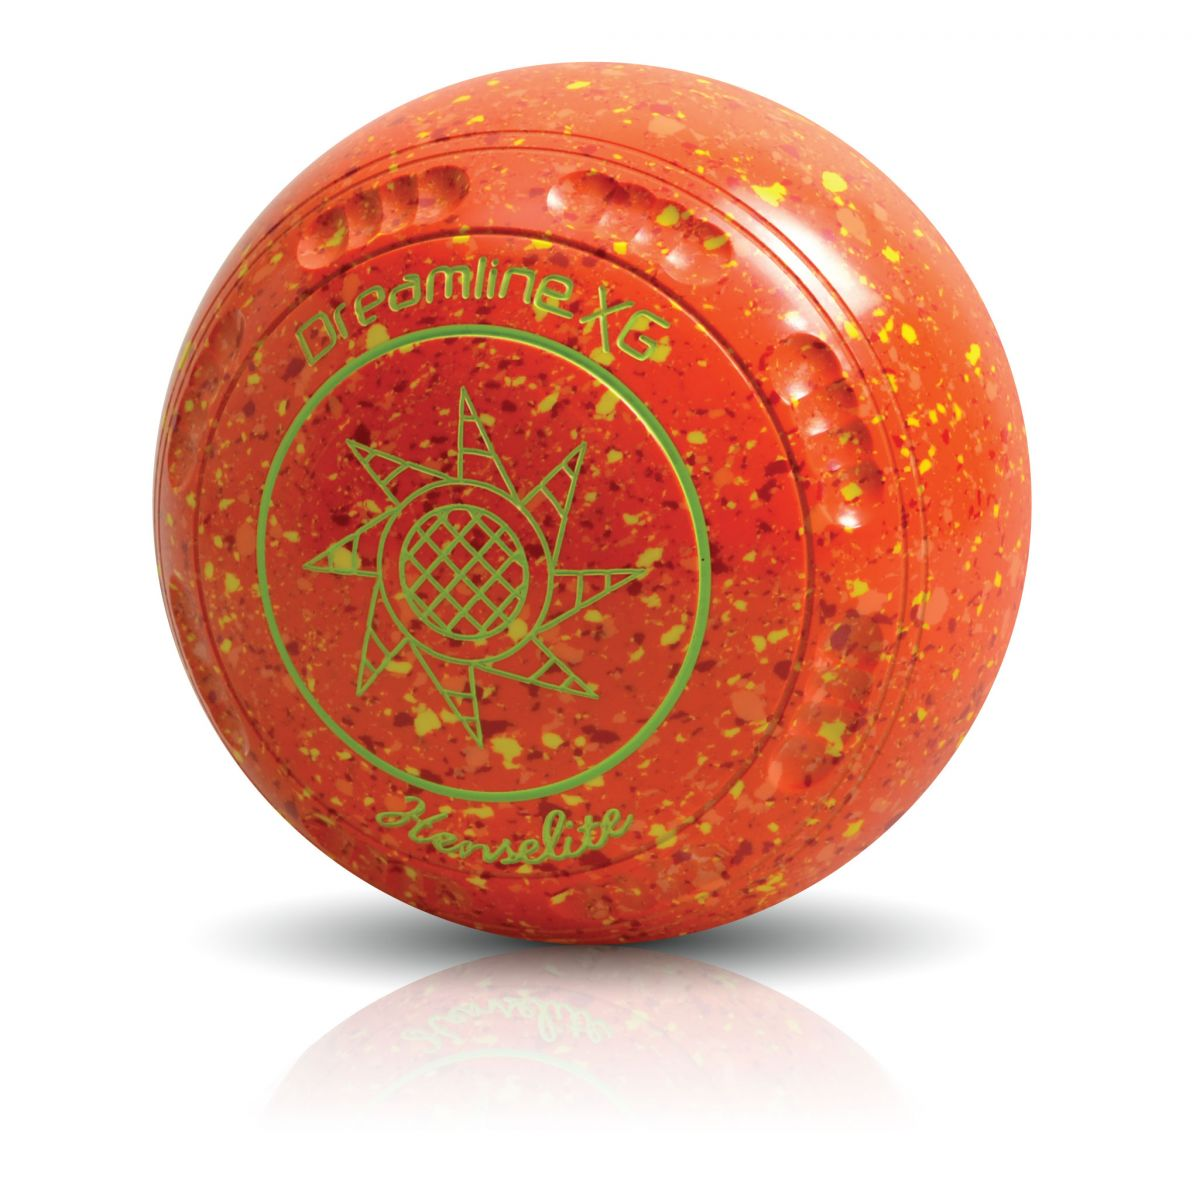 Henselite leaders in lawn bowls clothing and accessories worldwide dreamline xg current limited edition colours geenschuldenfo Choice Image